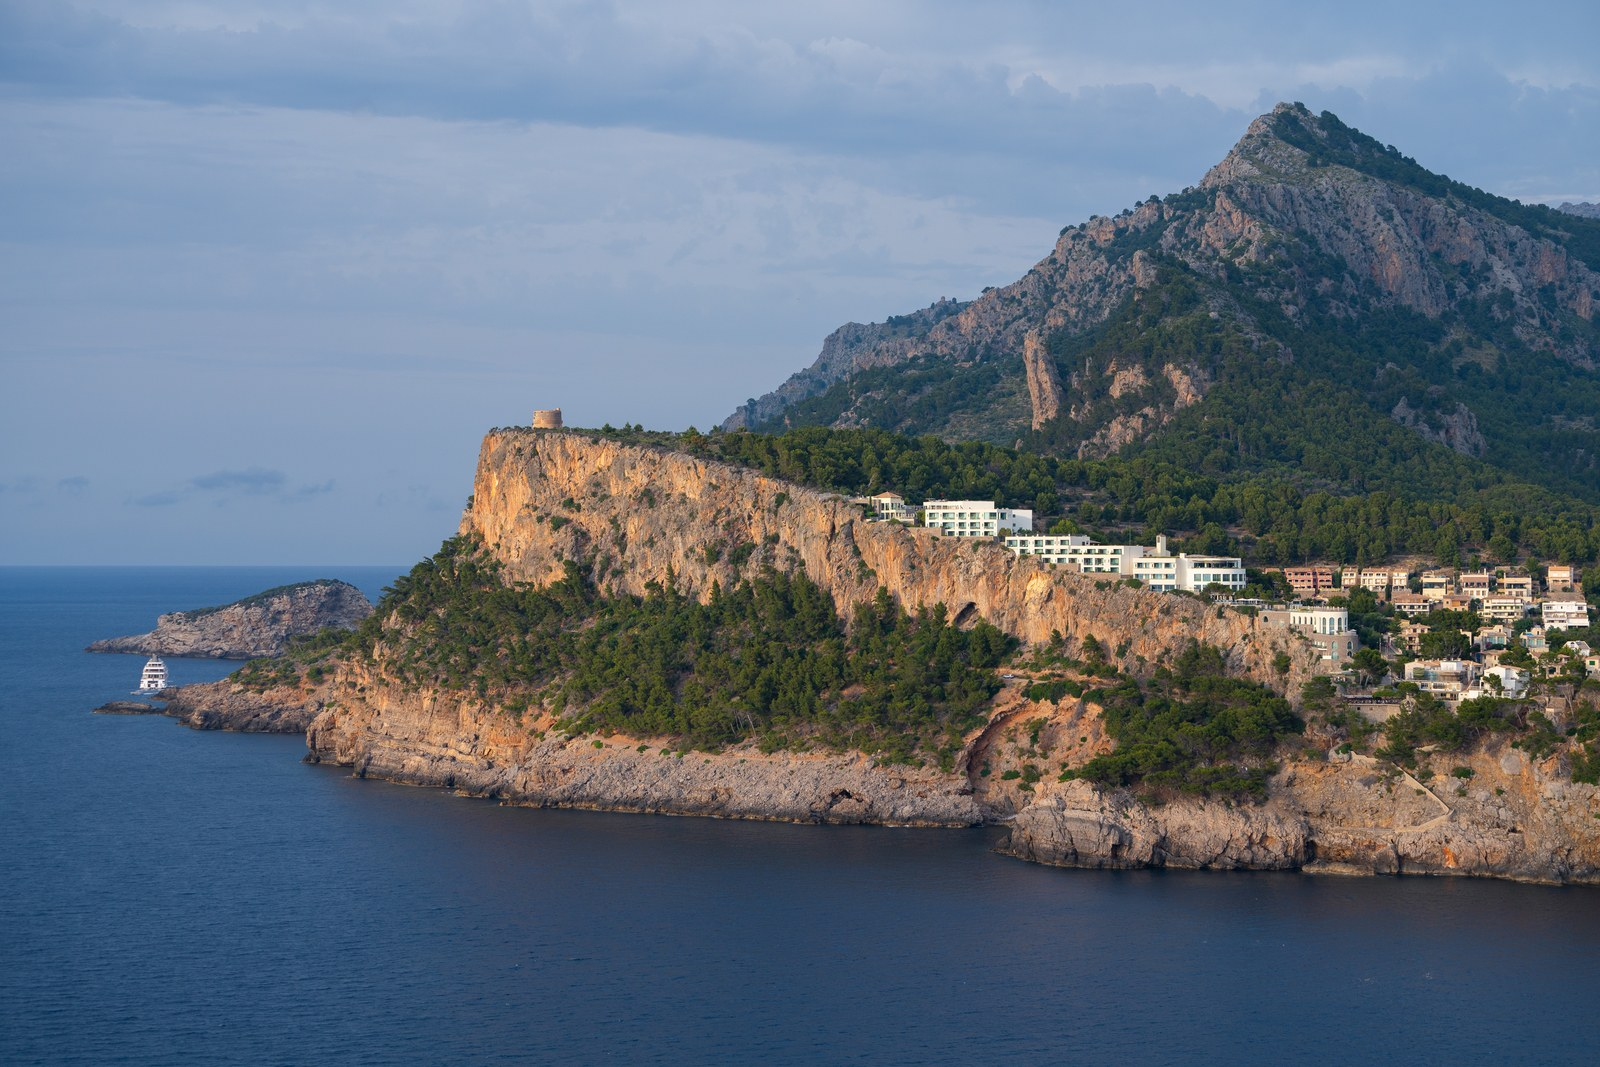 Image courtesy of Jumeirah Port Soller Hotel.